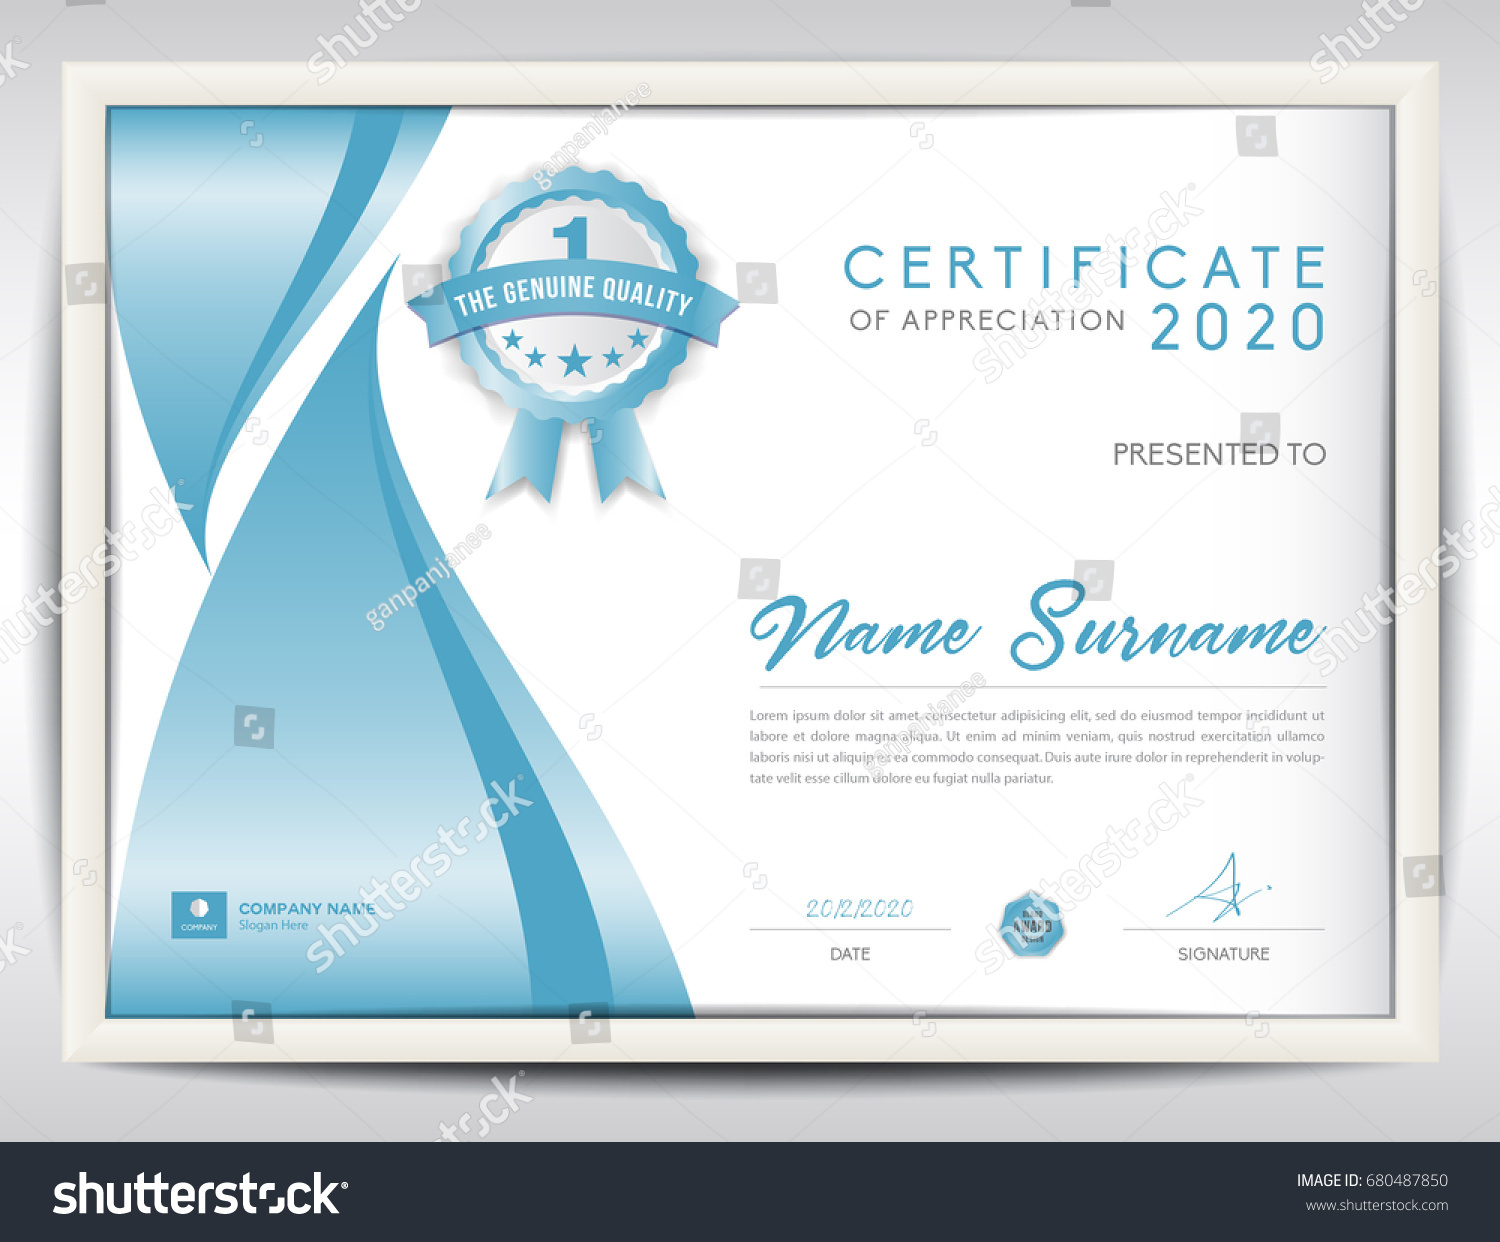 Certificate Template Vector Illustration Diploma Layout Stock Vector ...